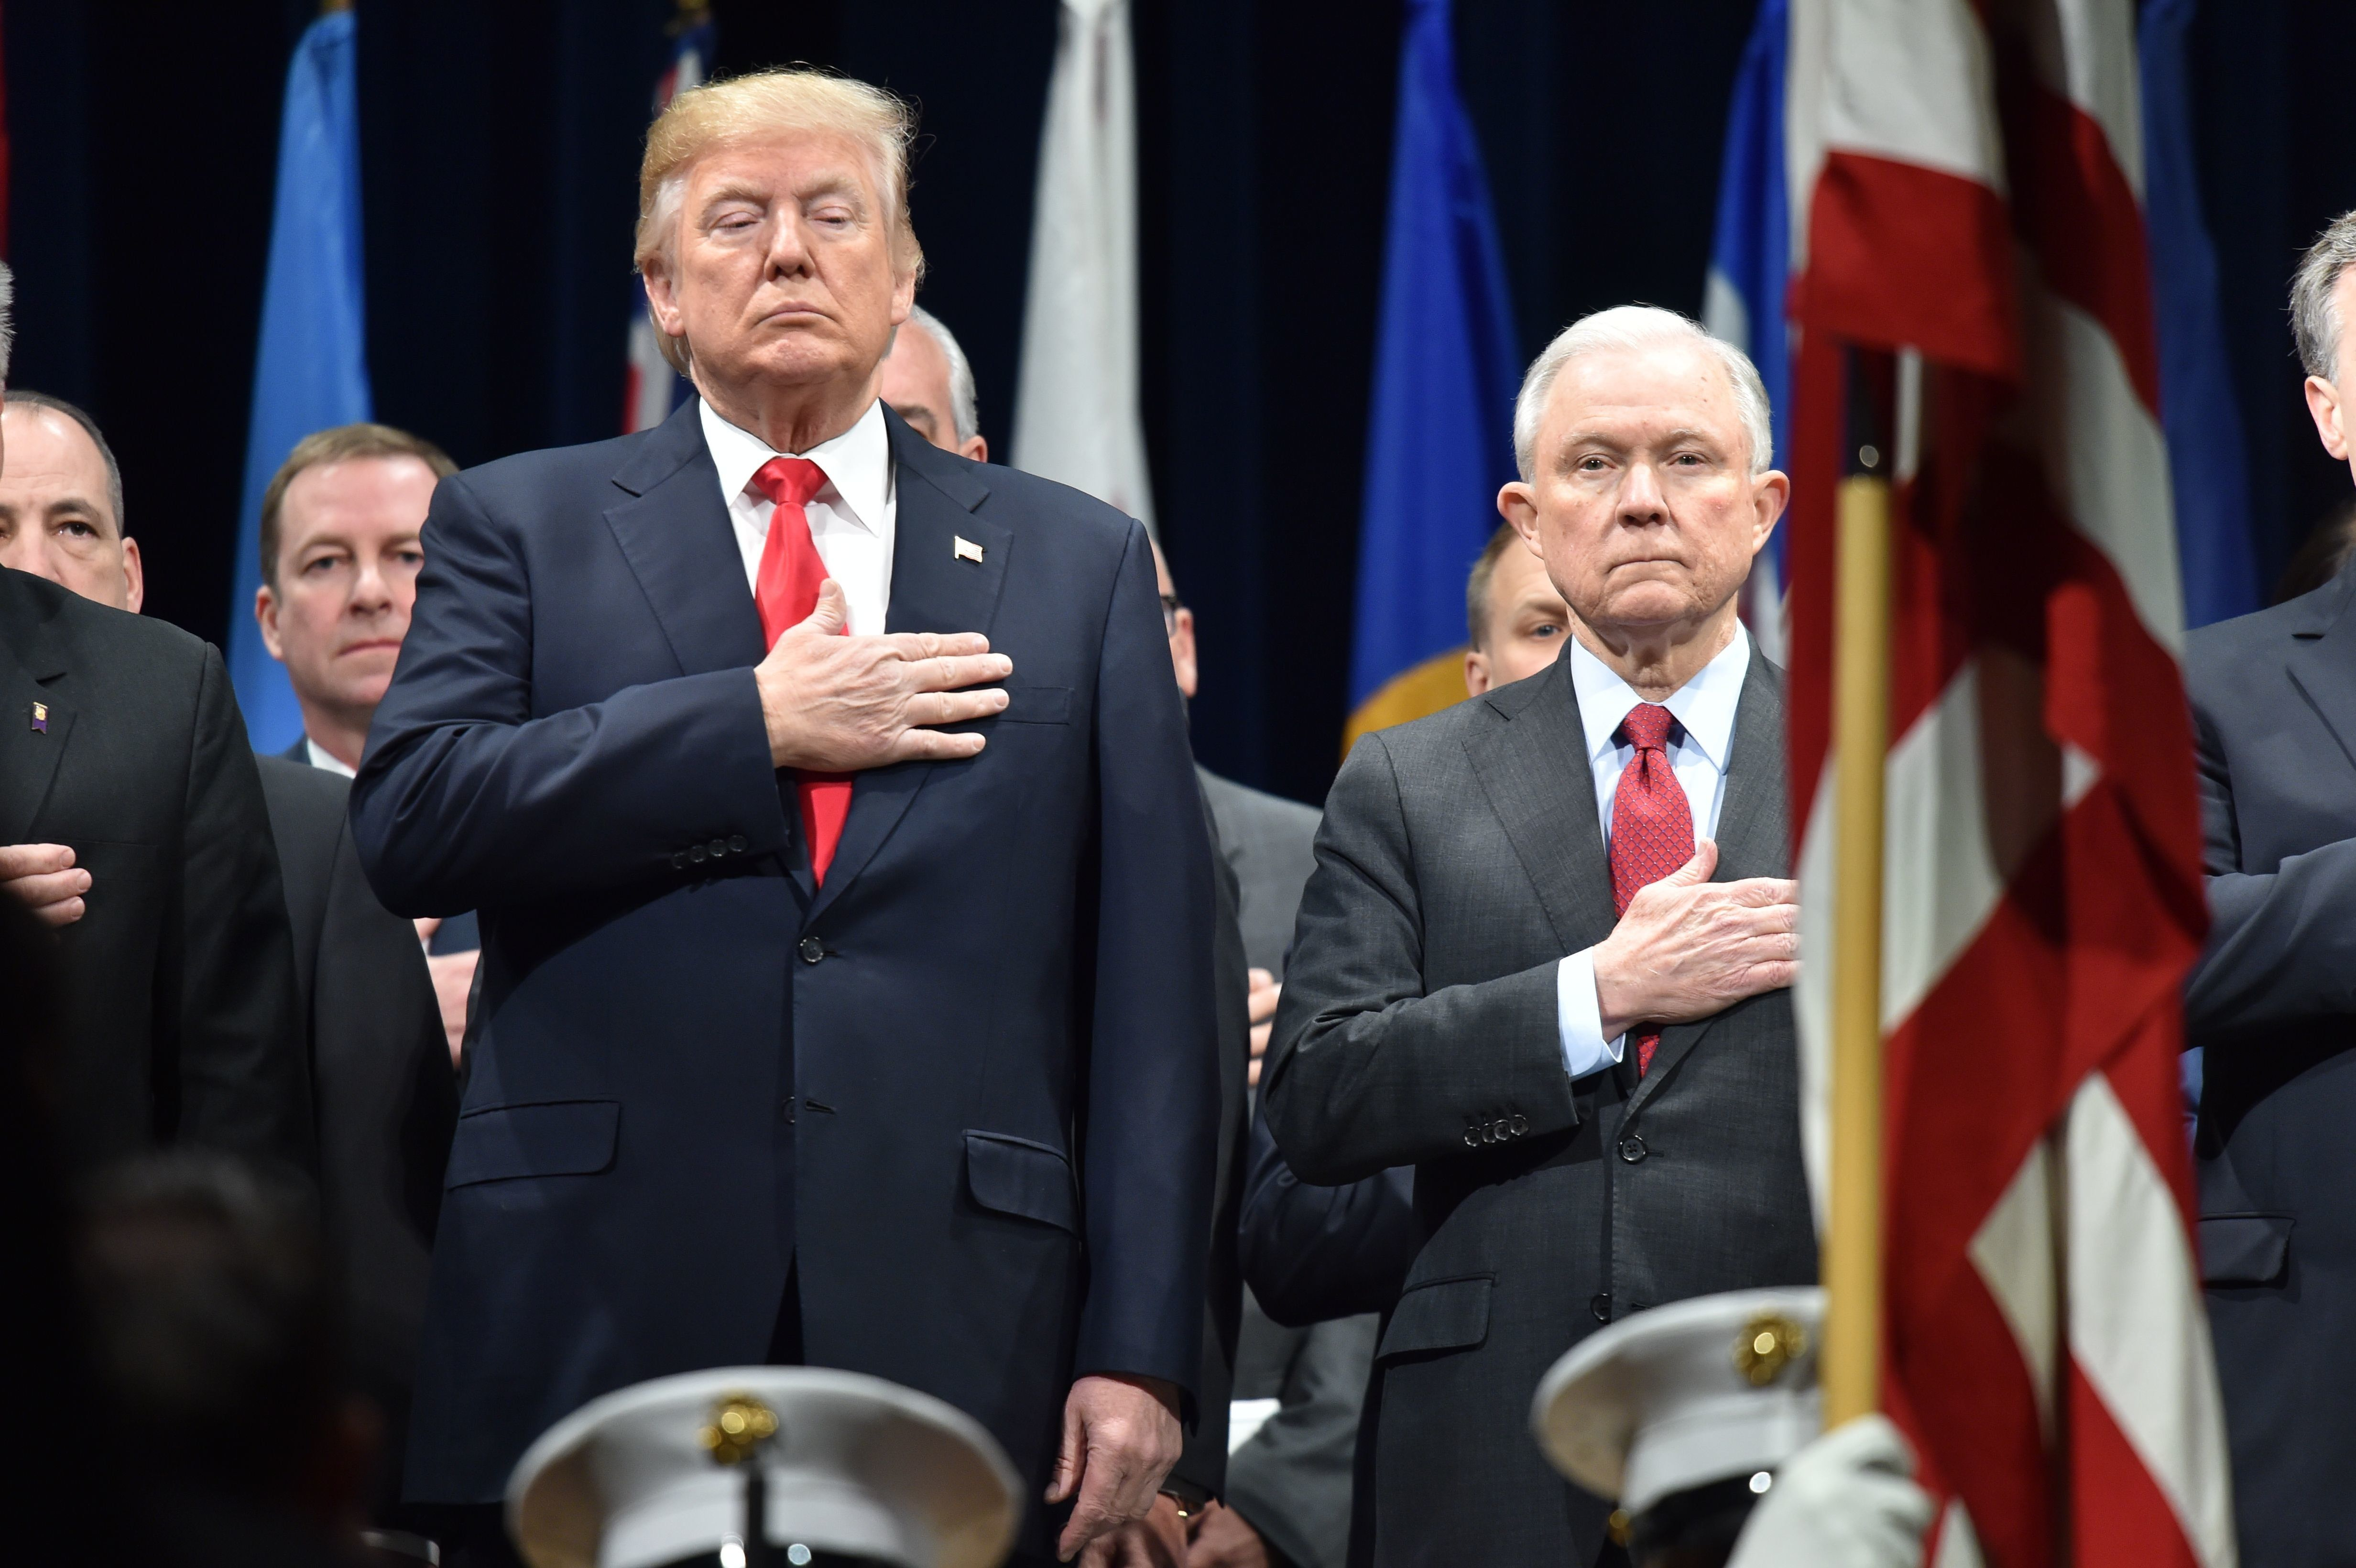 US President Donald Trump(L)stands with Attorney General Jeff Sessions on December 15, 2017 in Quantico, Virginia, before participating in the FBI National Academy graduation ceremony. / AFP PHOTO / Nicholas Kamm        (Photo credit should read NICHOLAS KAMM/AFP/Getty Images)